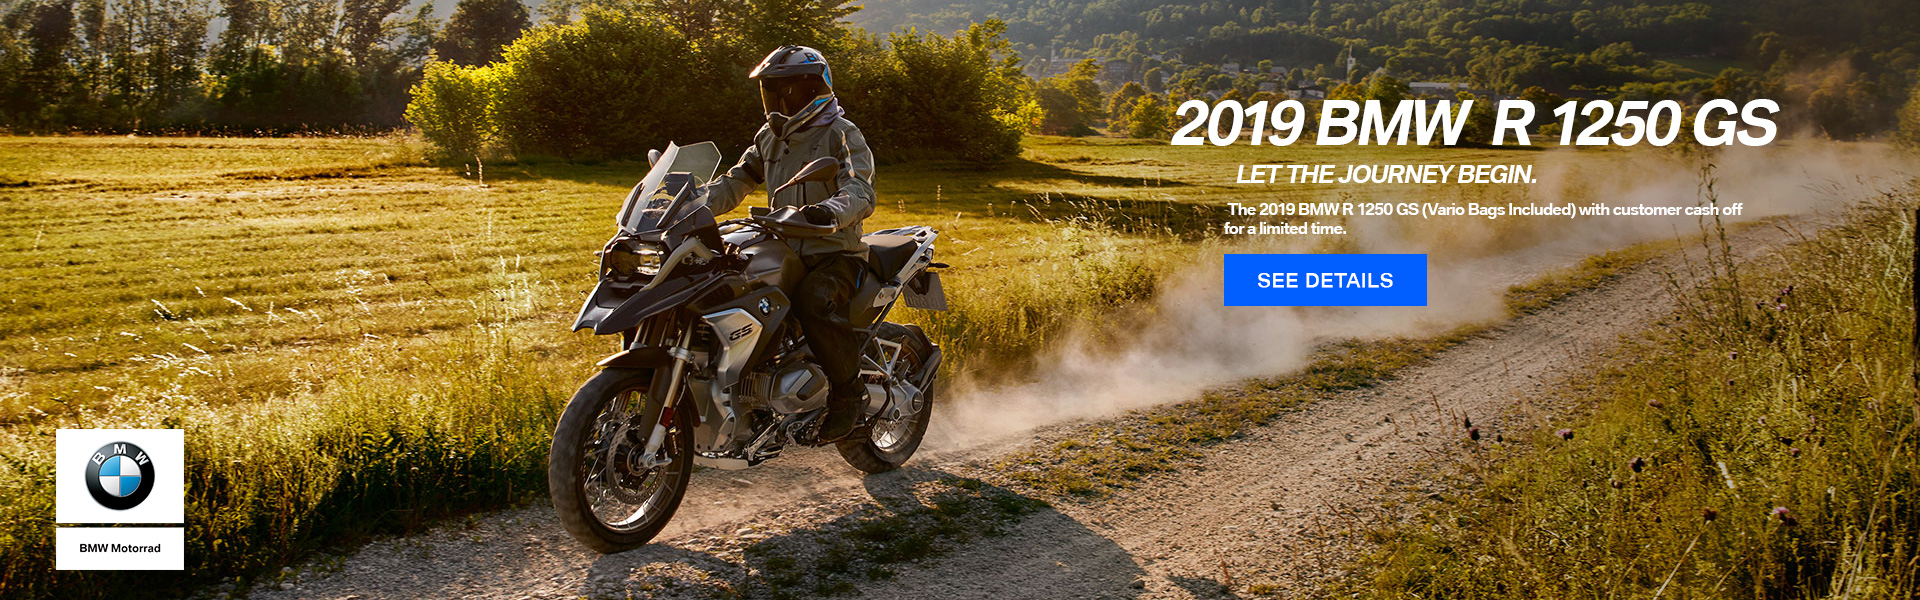 2019 BMW R 1250 GS Vario Bags Included